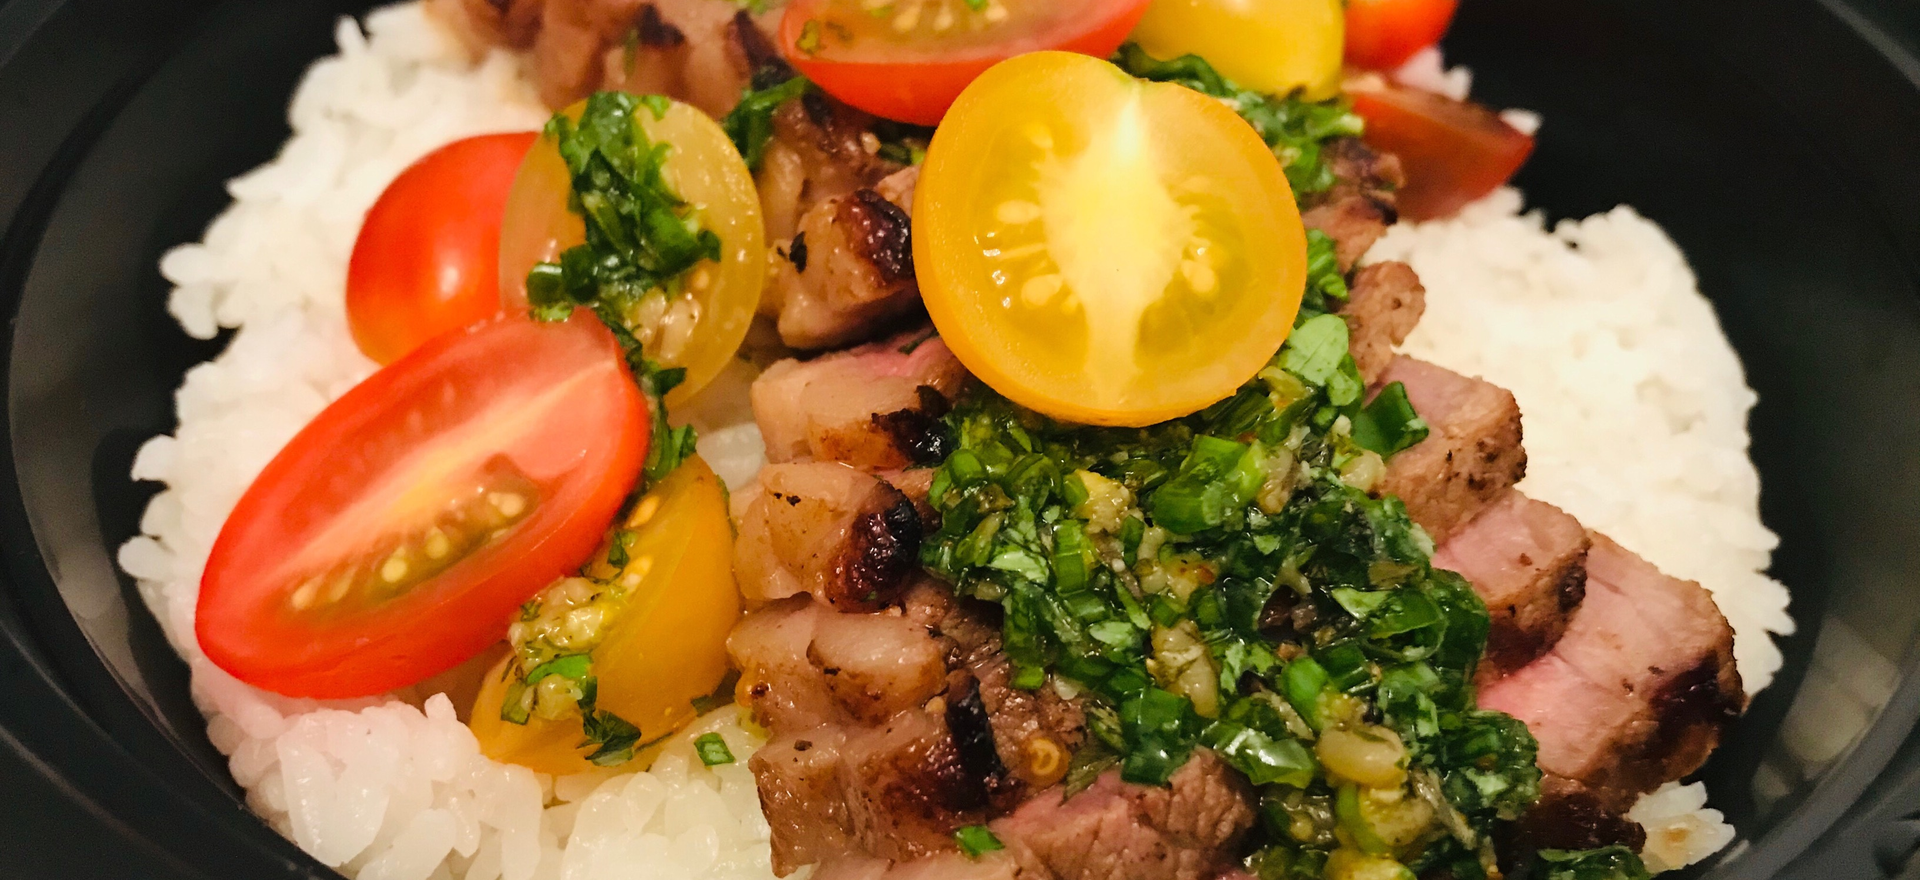 Grilled Steak w/ smoked negi chimichurri